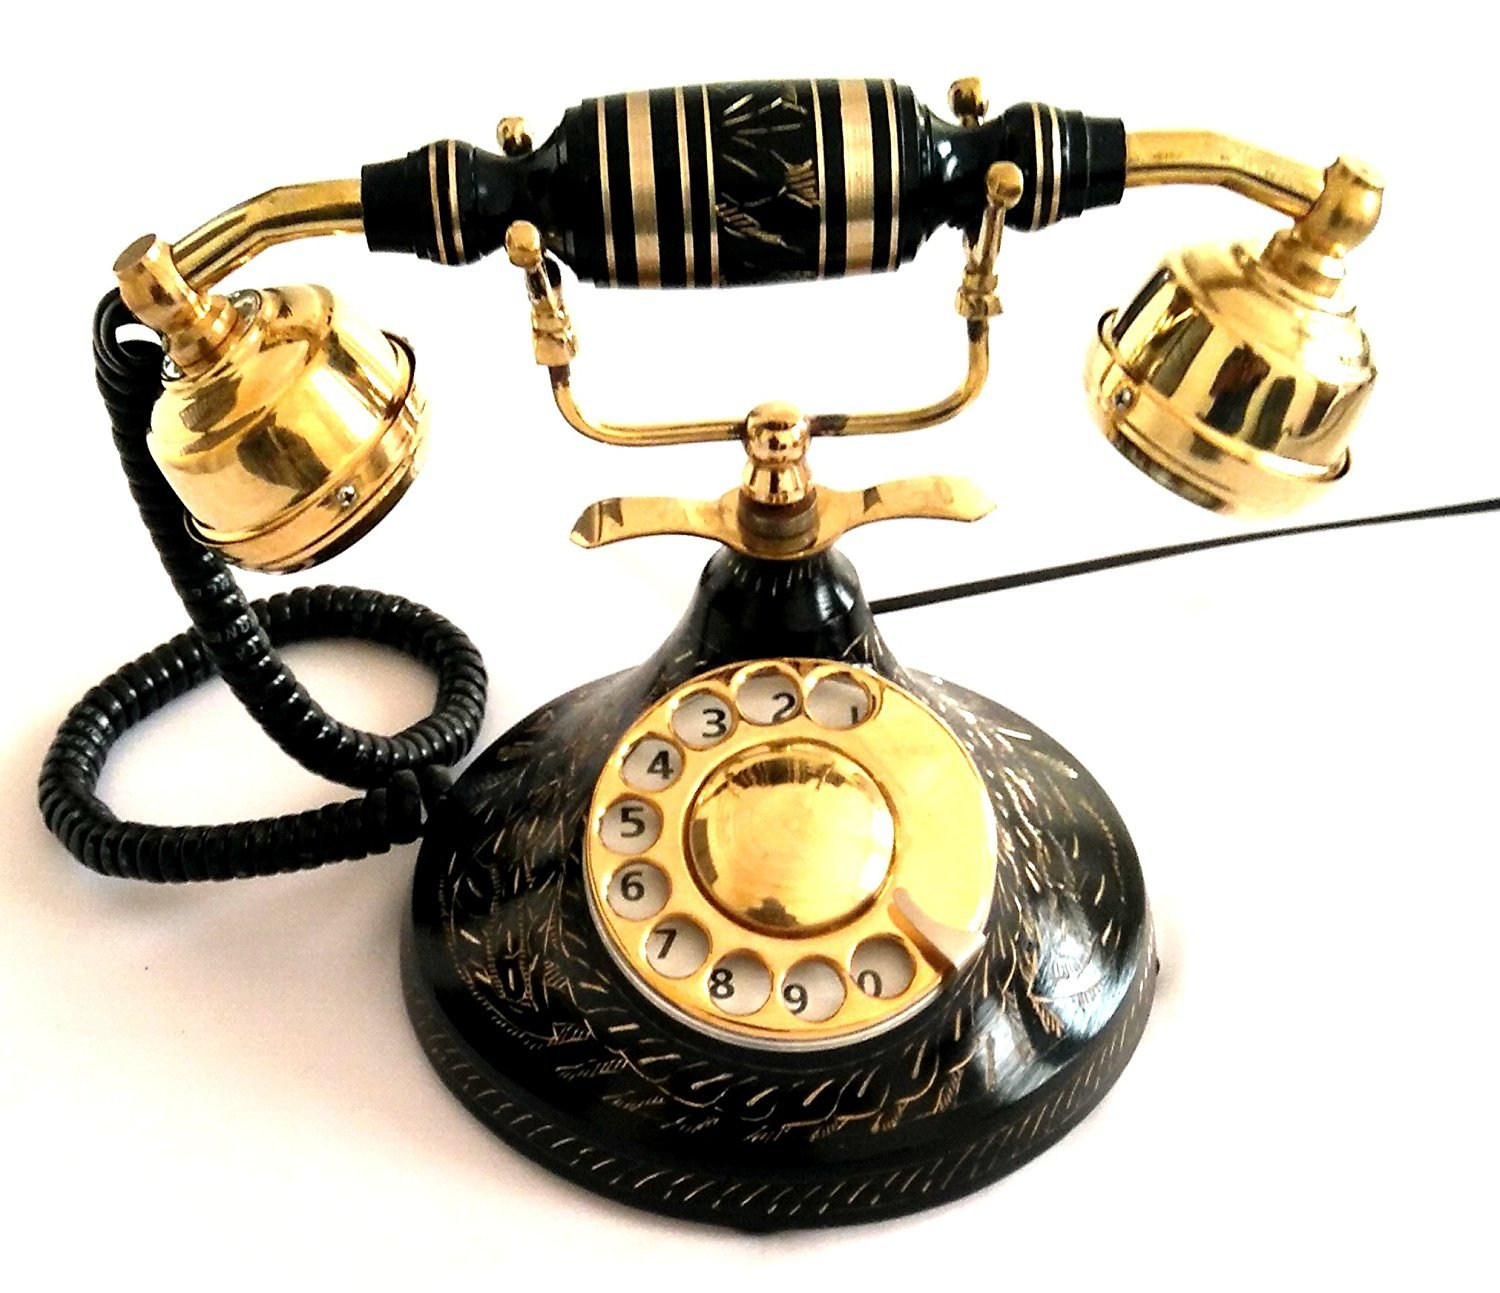 Artshai black antique finish landline telephone with rotary dial